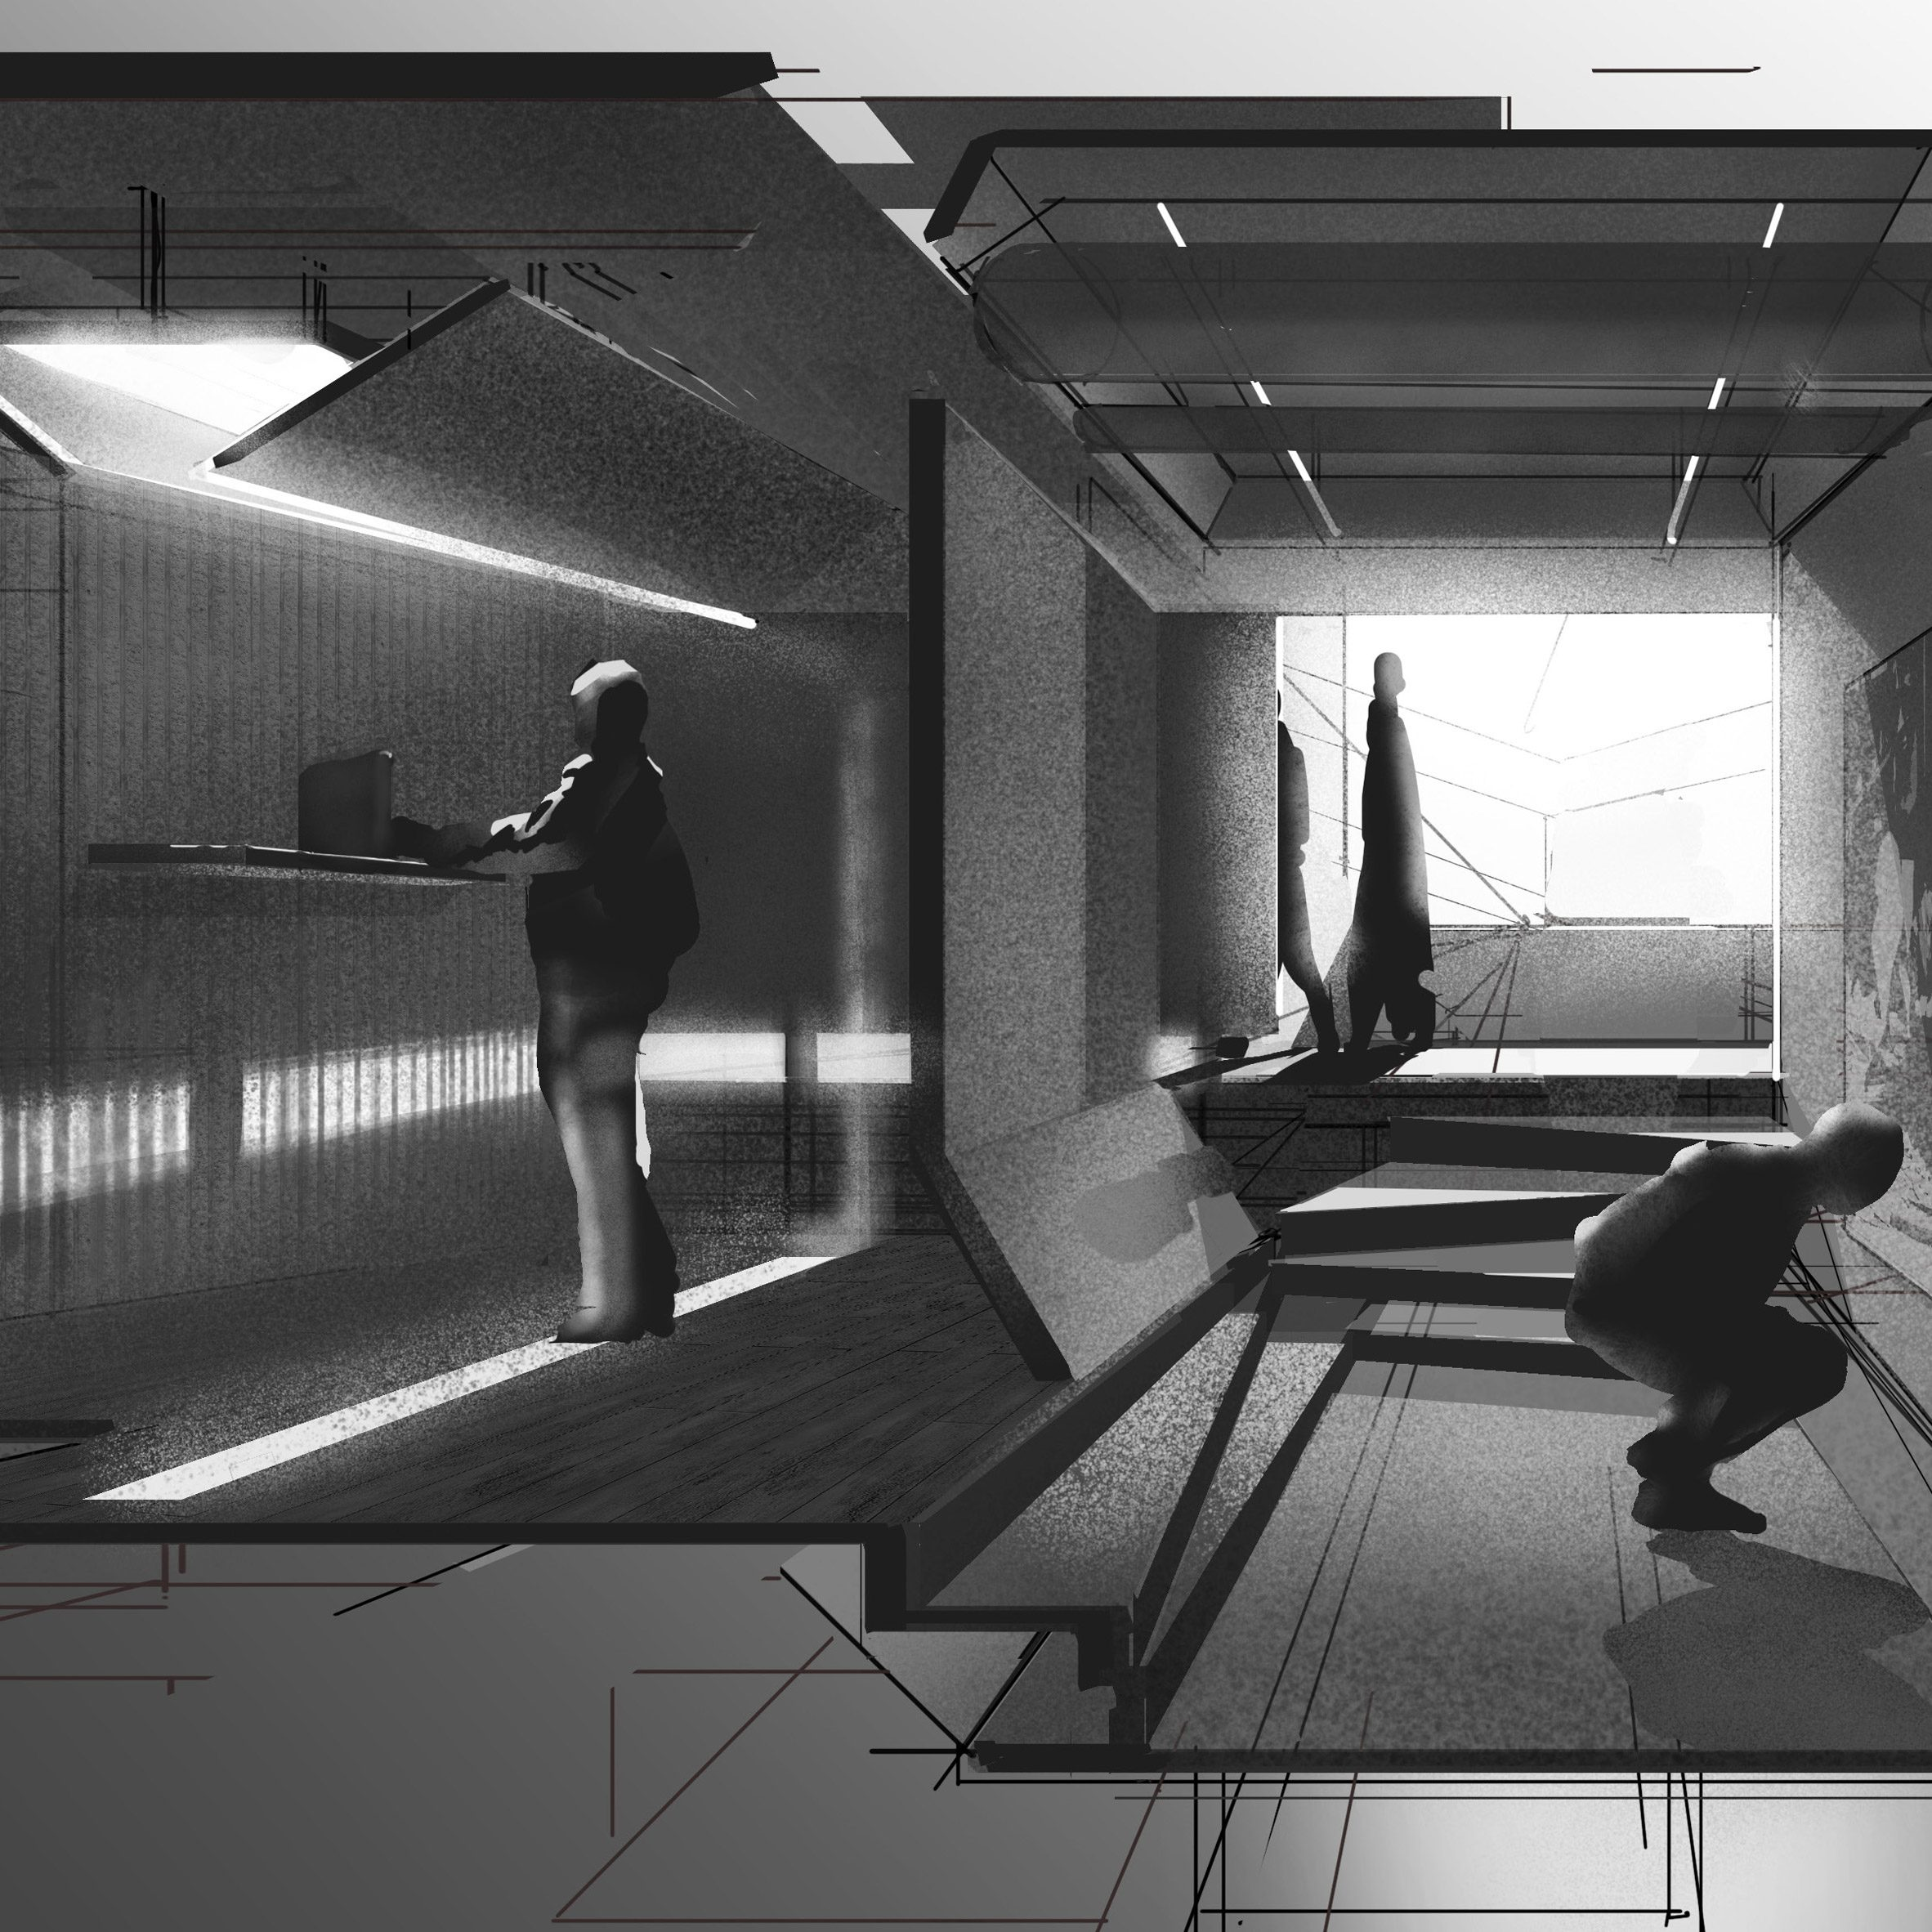 Project by a former architecture student at Ravensbourne University London